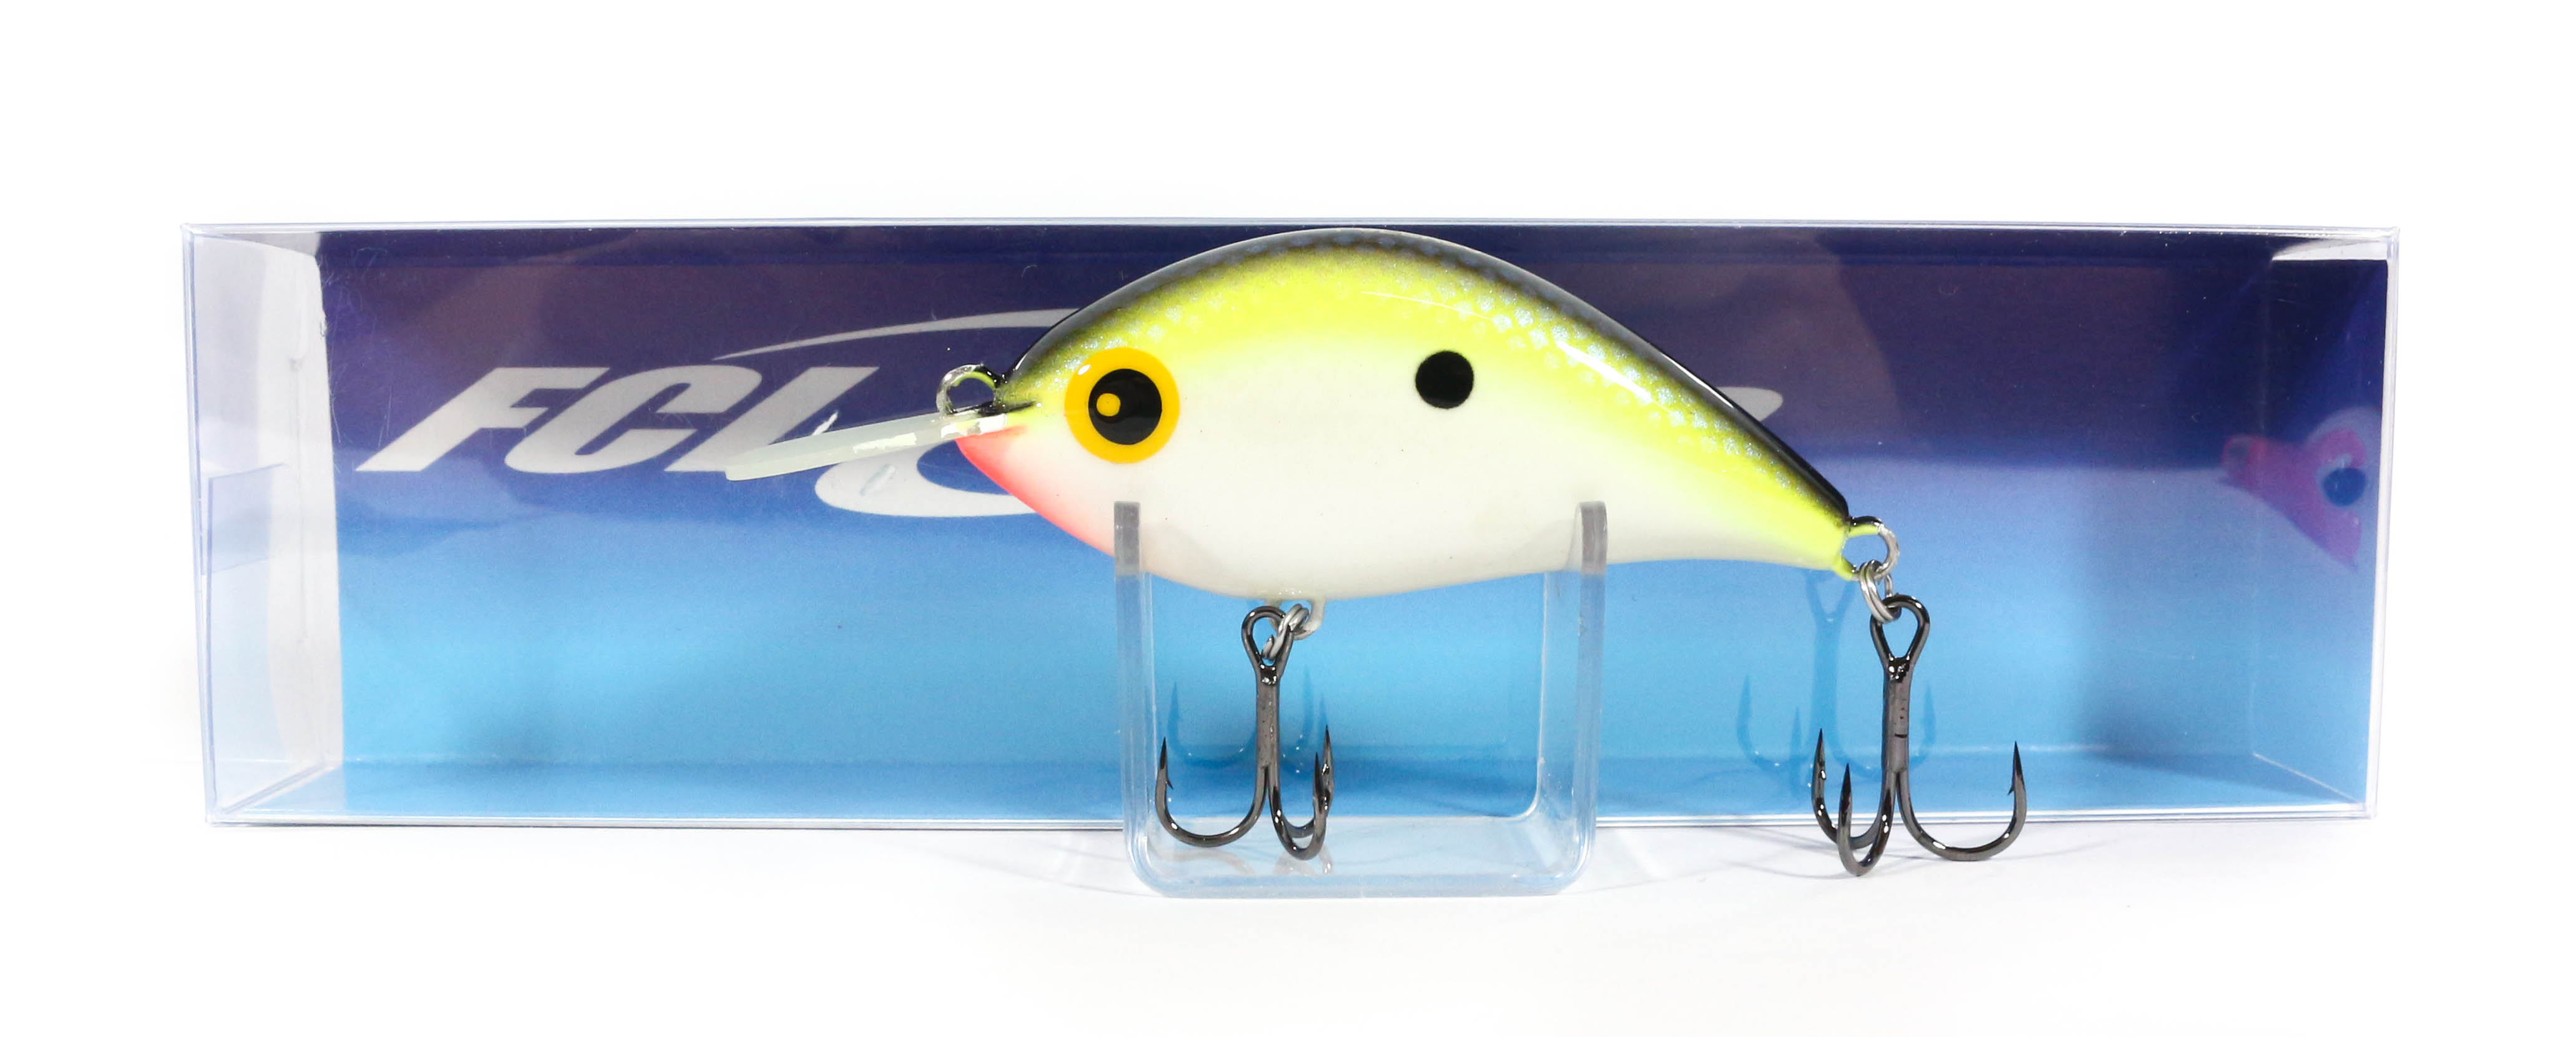 FCL Labo Lure TKC 60 Floating Lure NS (3849)